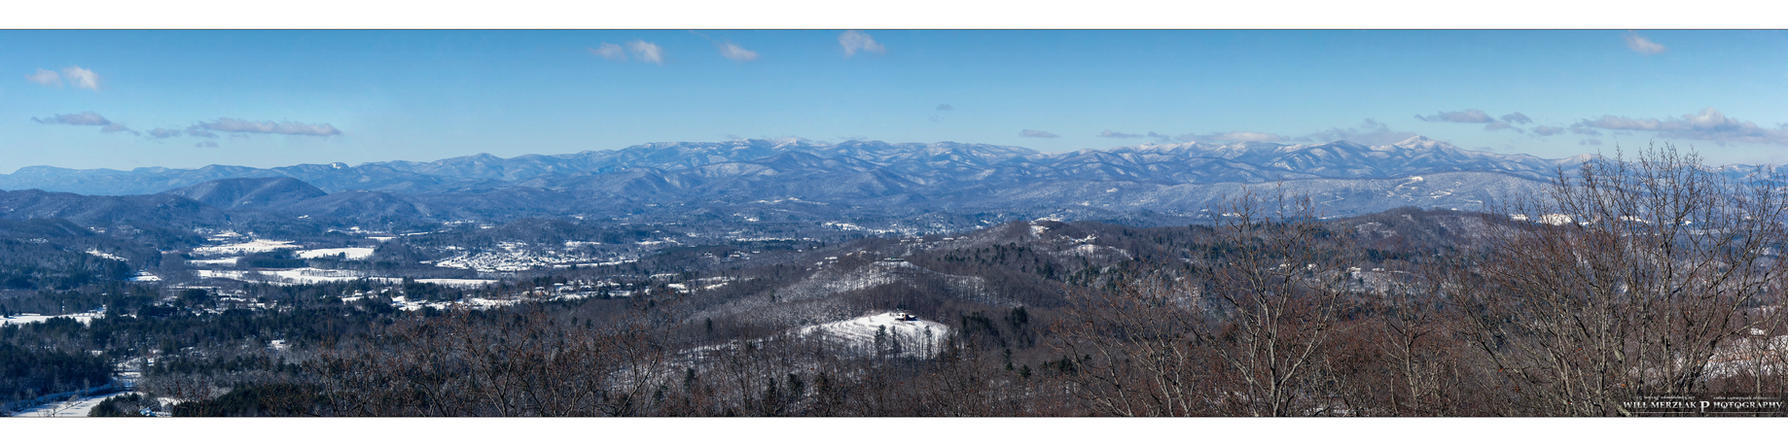 White Smoky Mountains by MRBee30